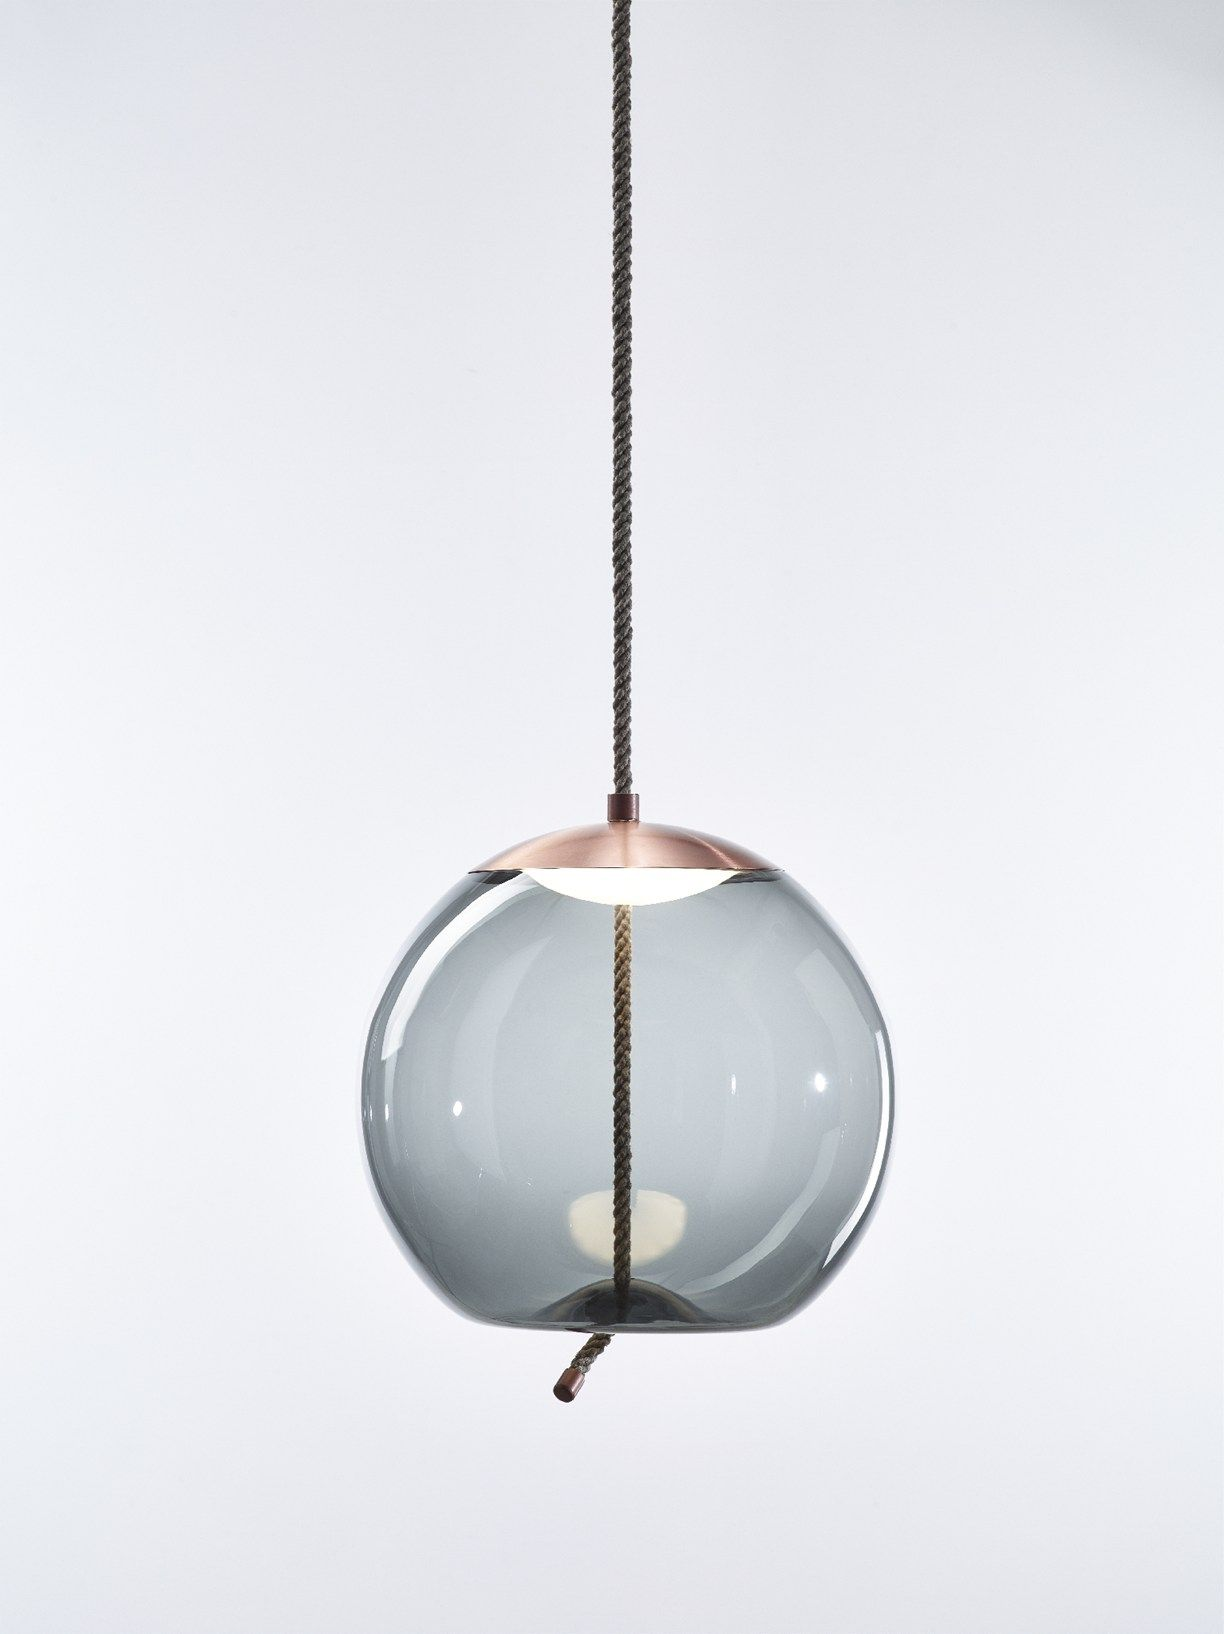 asymmetrical bathroom pendant lighting. Knot From Brokis At Inform Interiors: KNOT Is A Collection Of Stately Pendent Lights That Appose Two Dramatically . Asymmetrical Bathroom Pendant Lighting